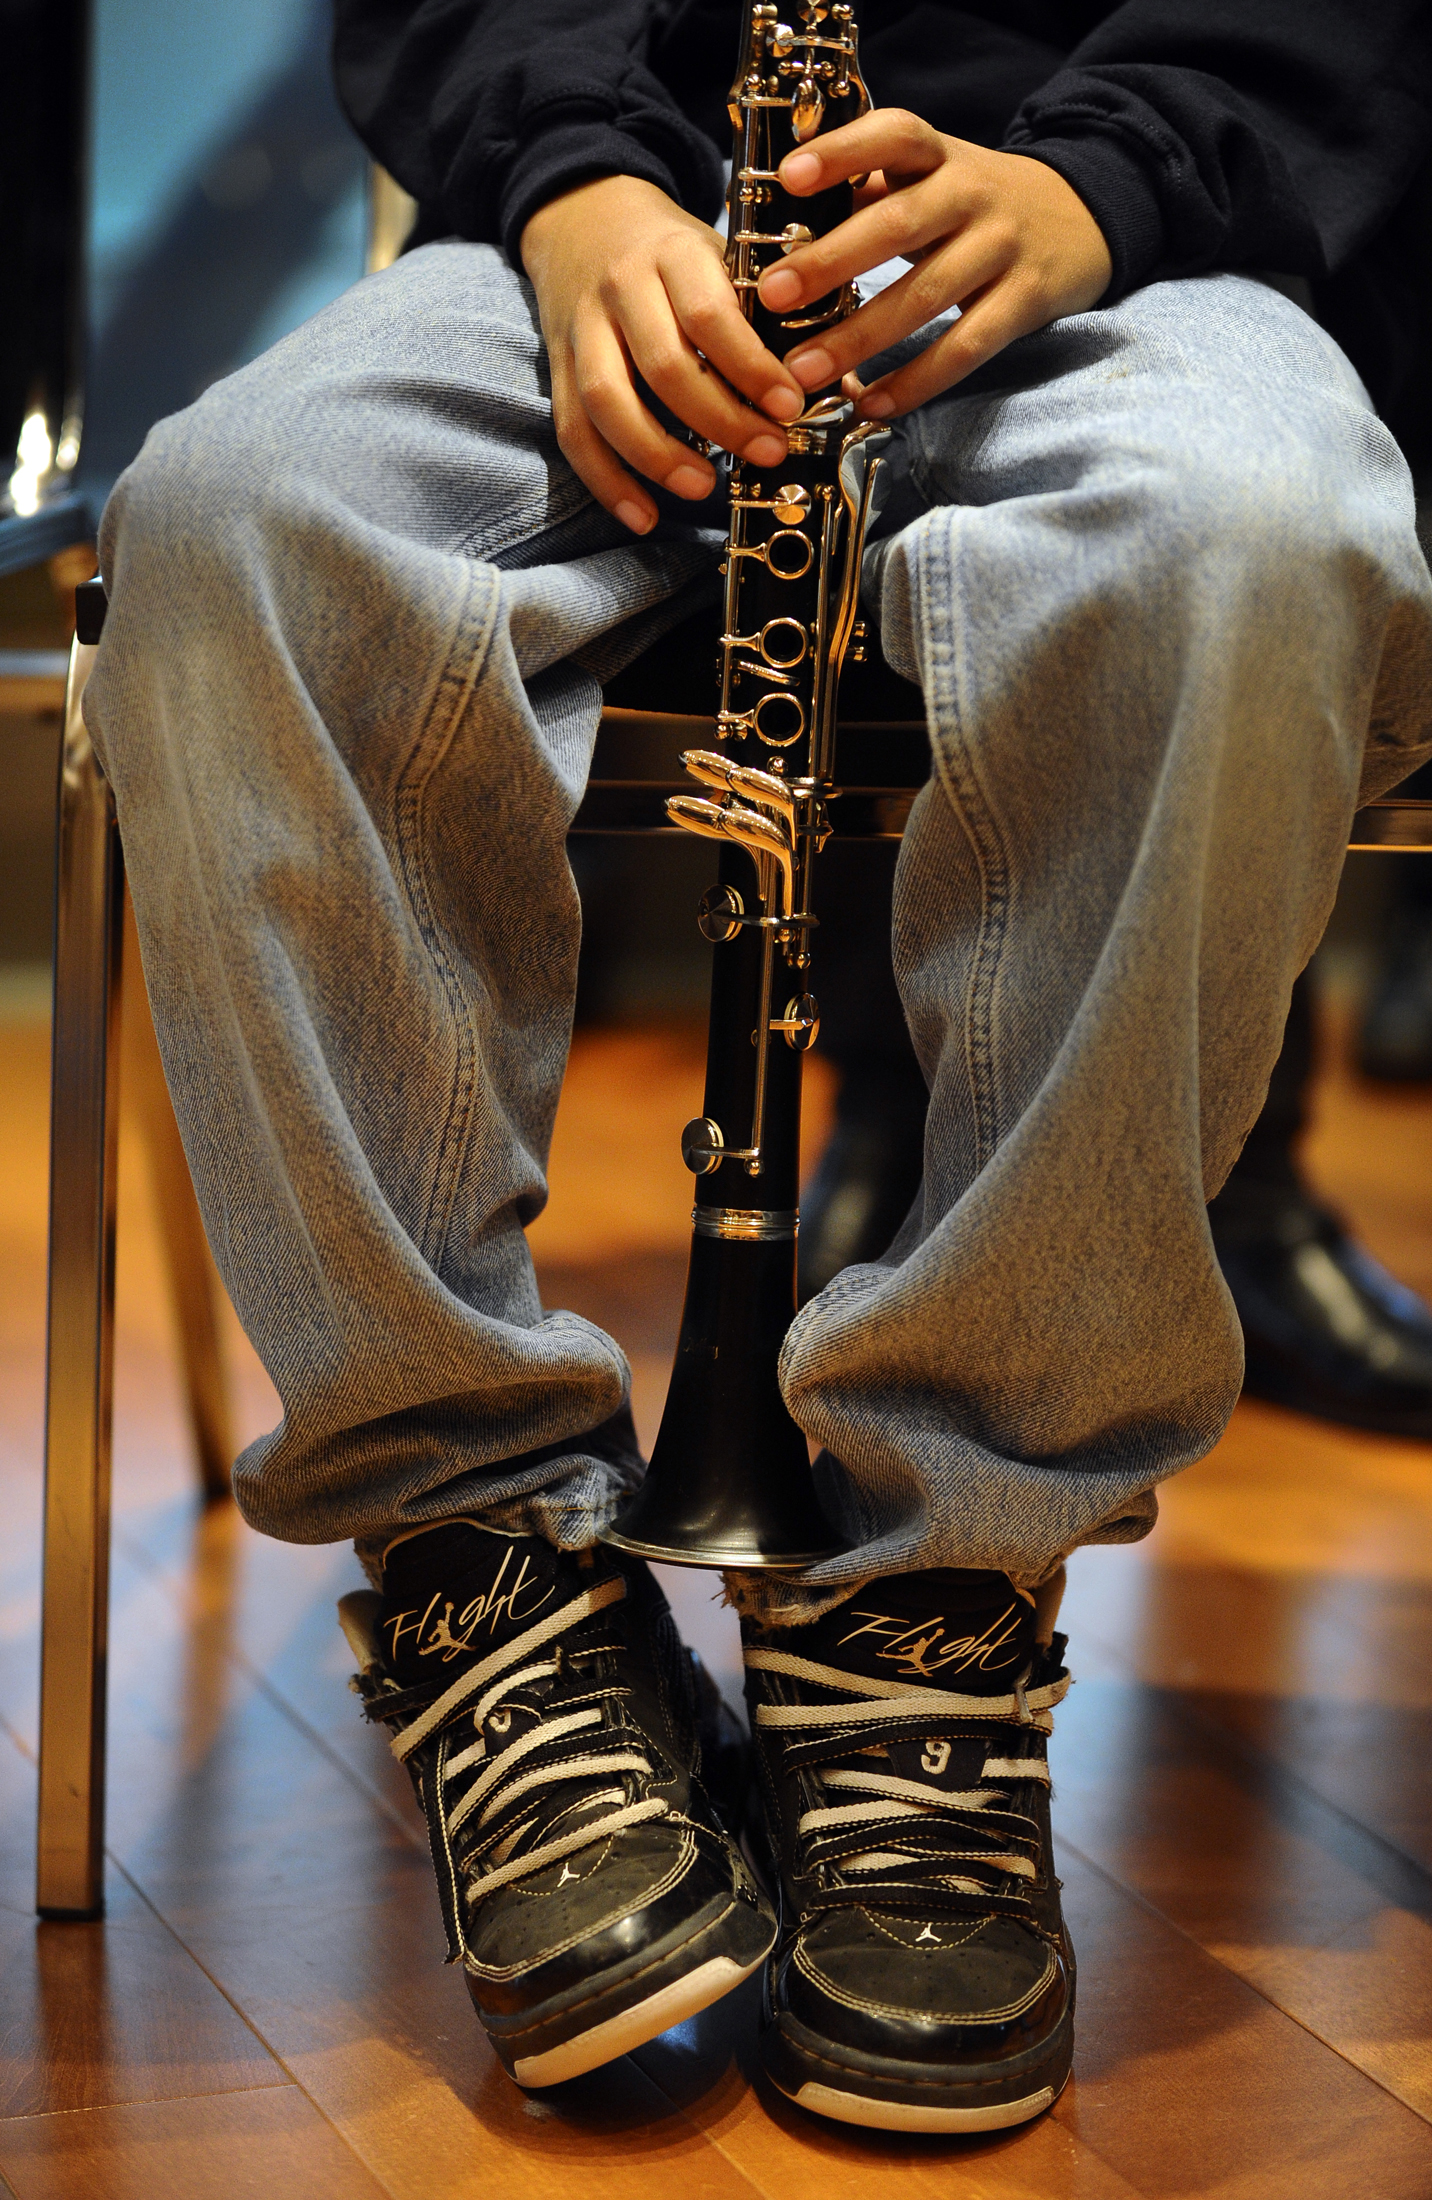 Stock Photo: Bringing Music To Life Instrument Drive - clarinet